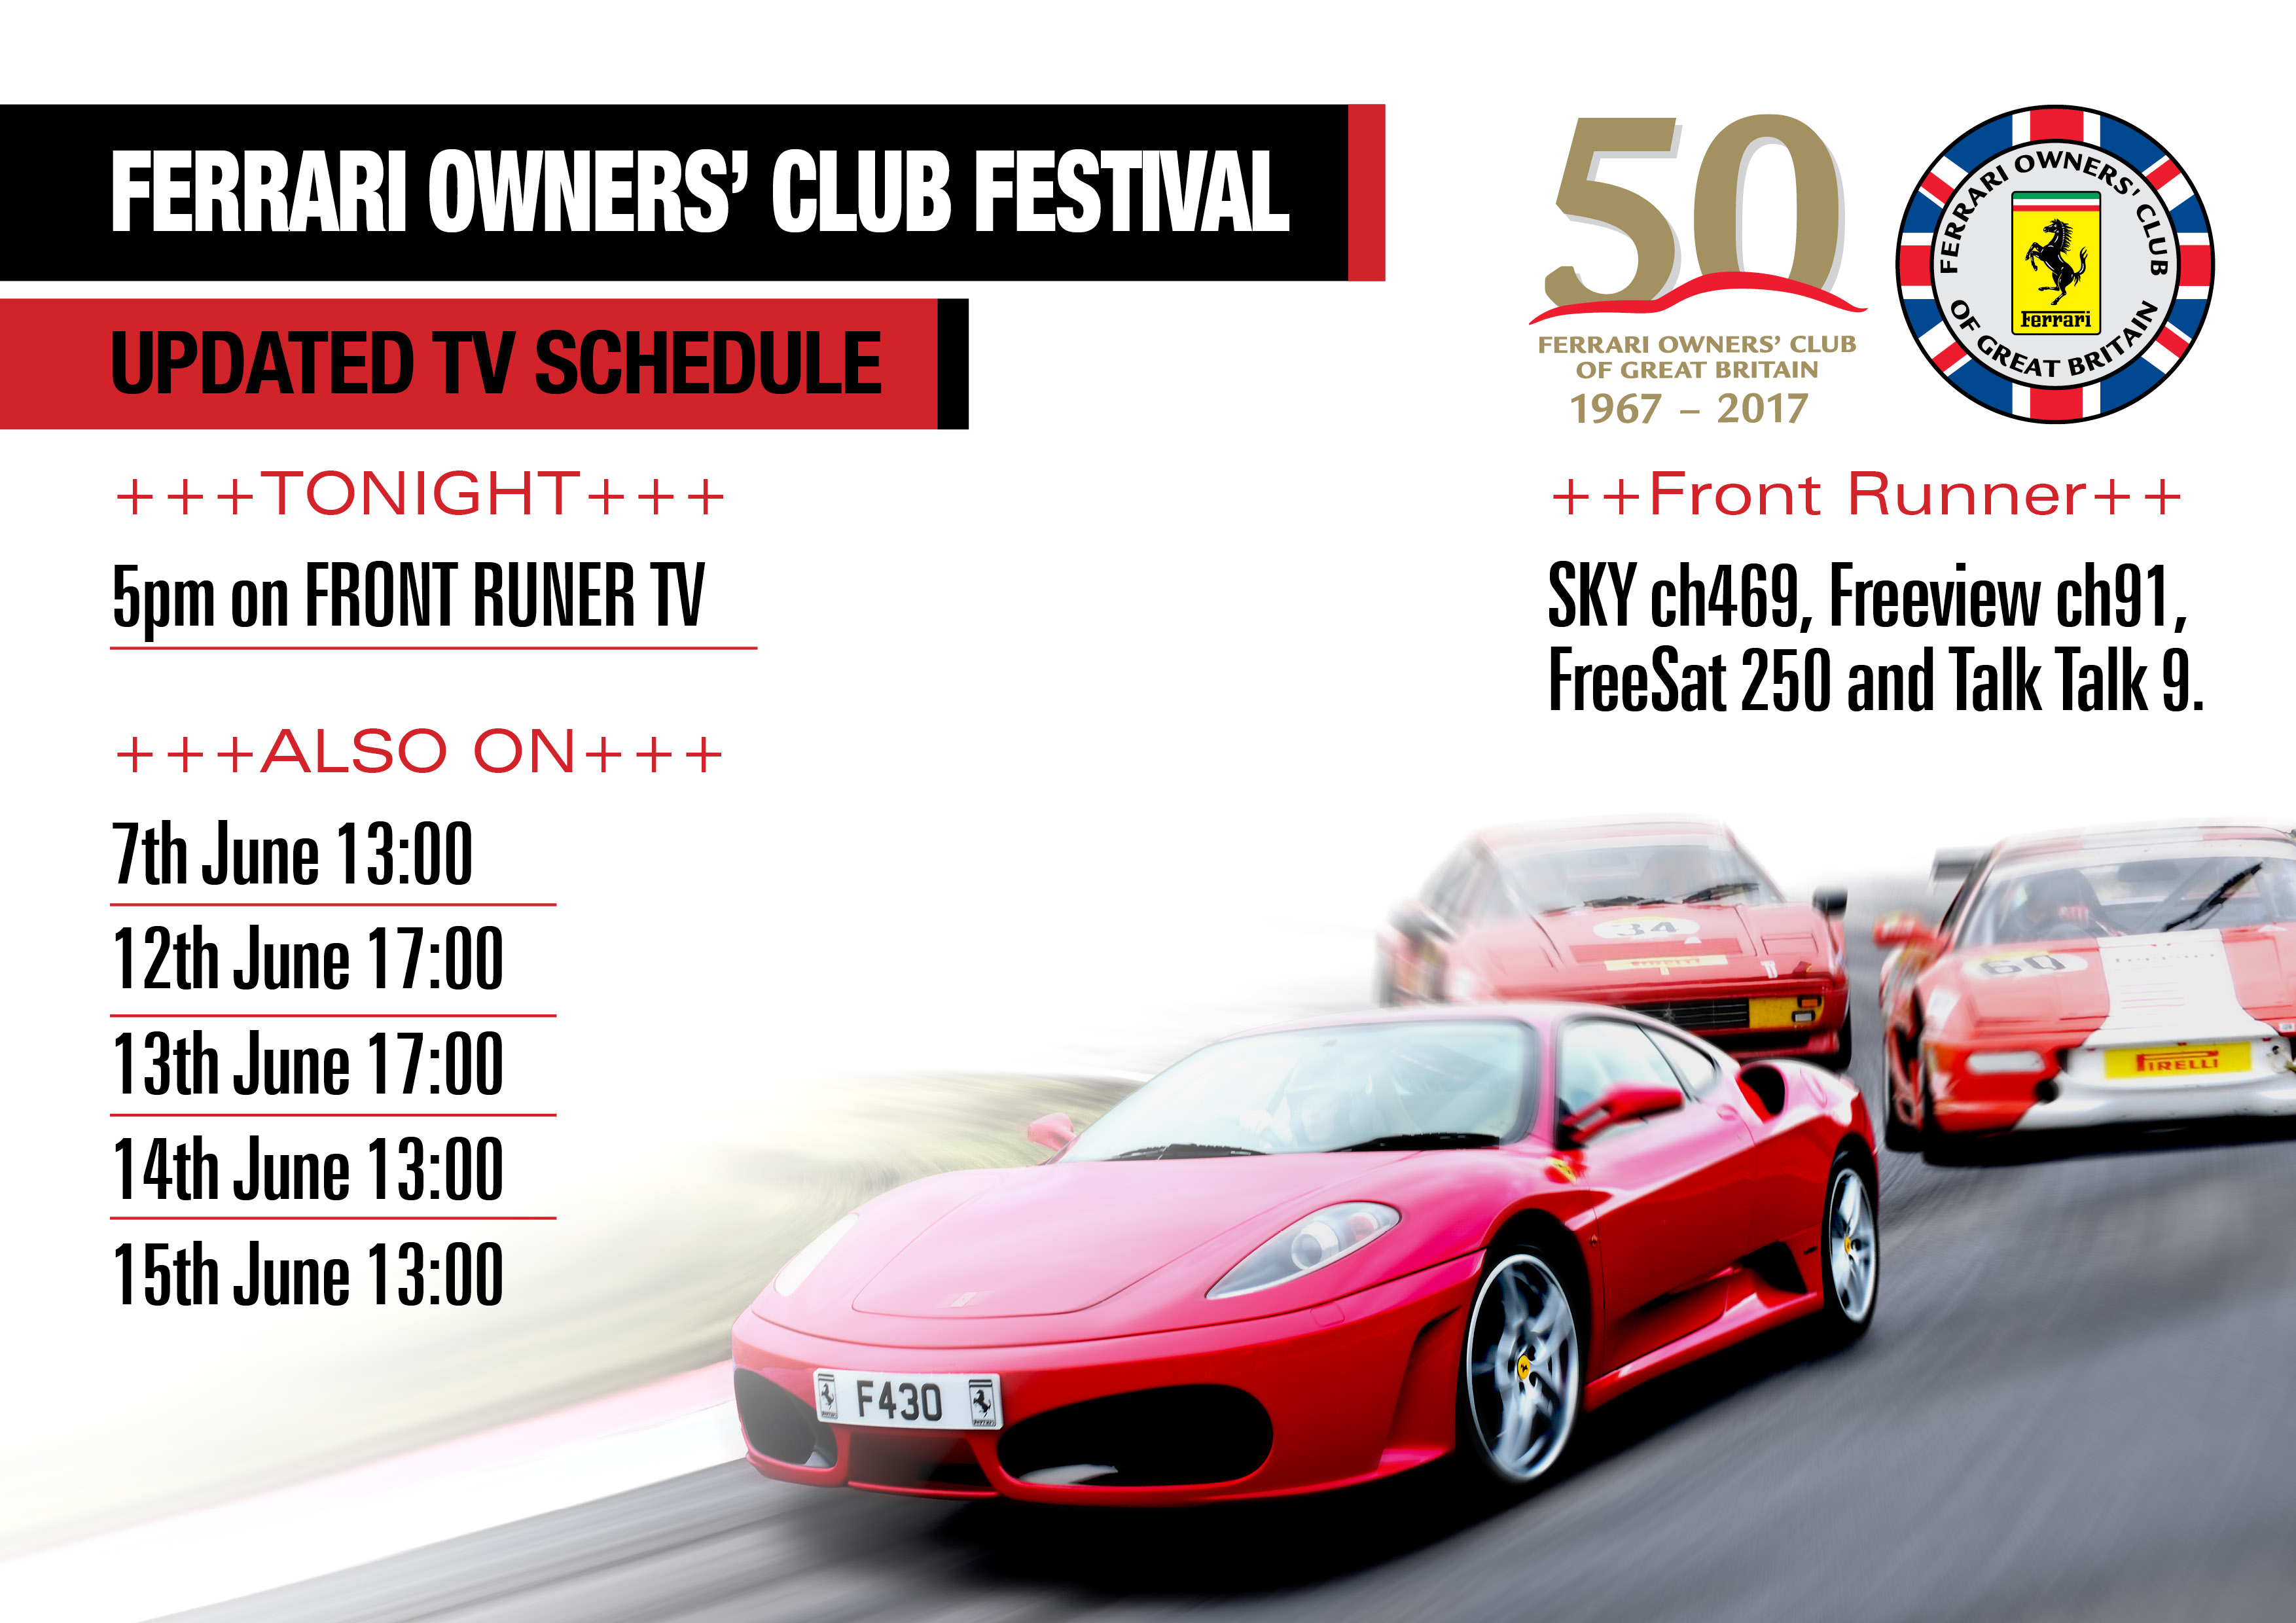 Ferrari Owner' Club Festival at Knockhill 2017 – Full Programme